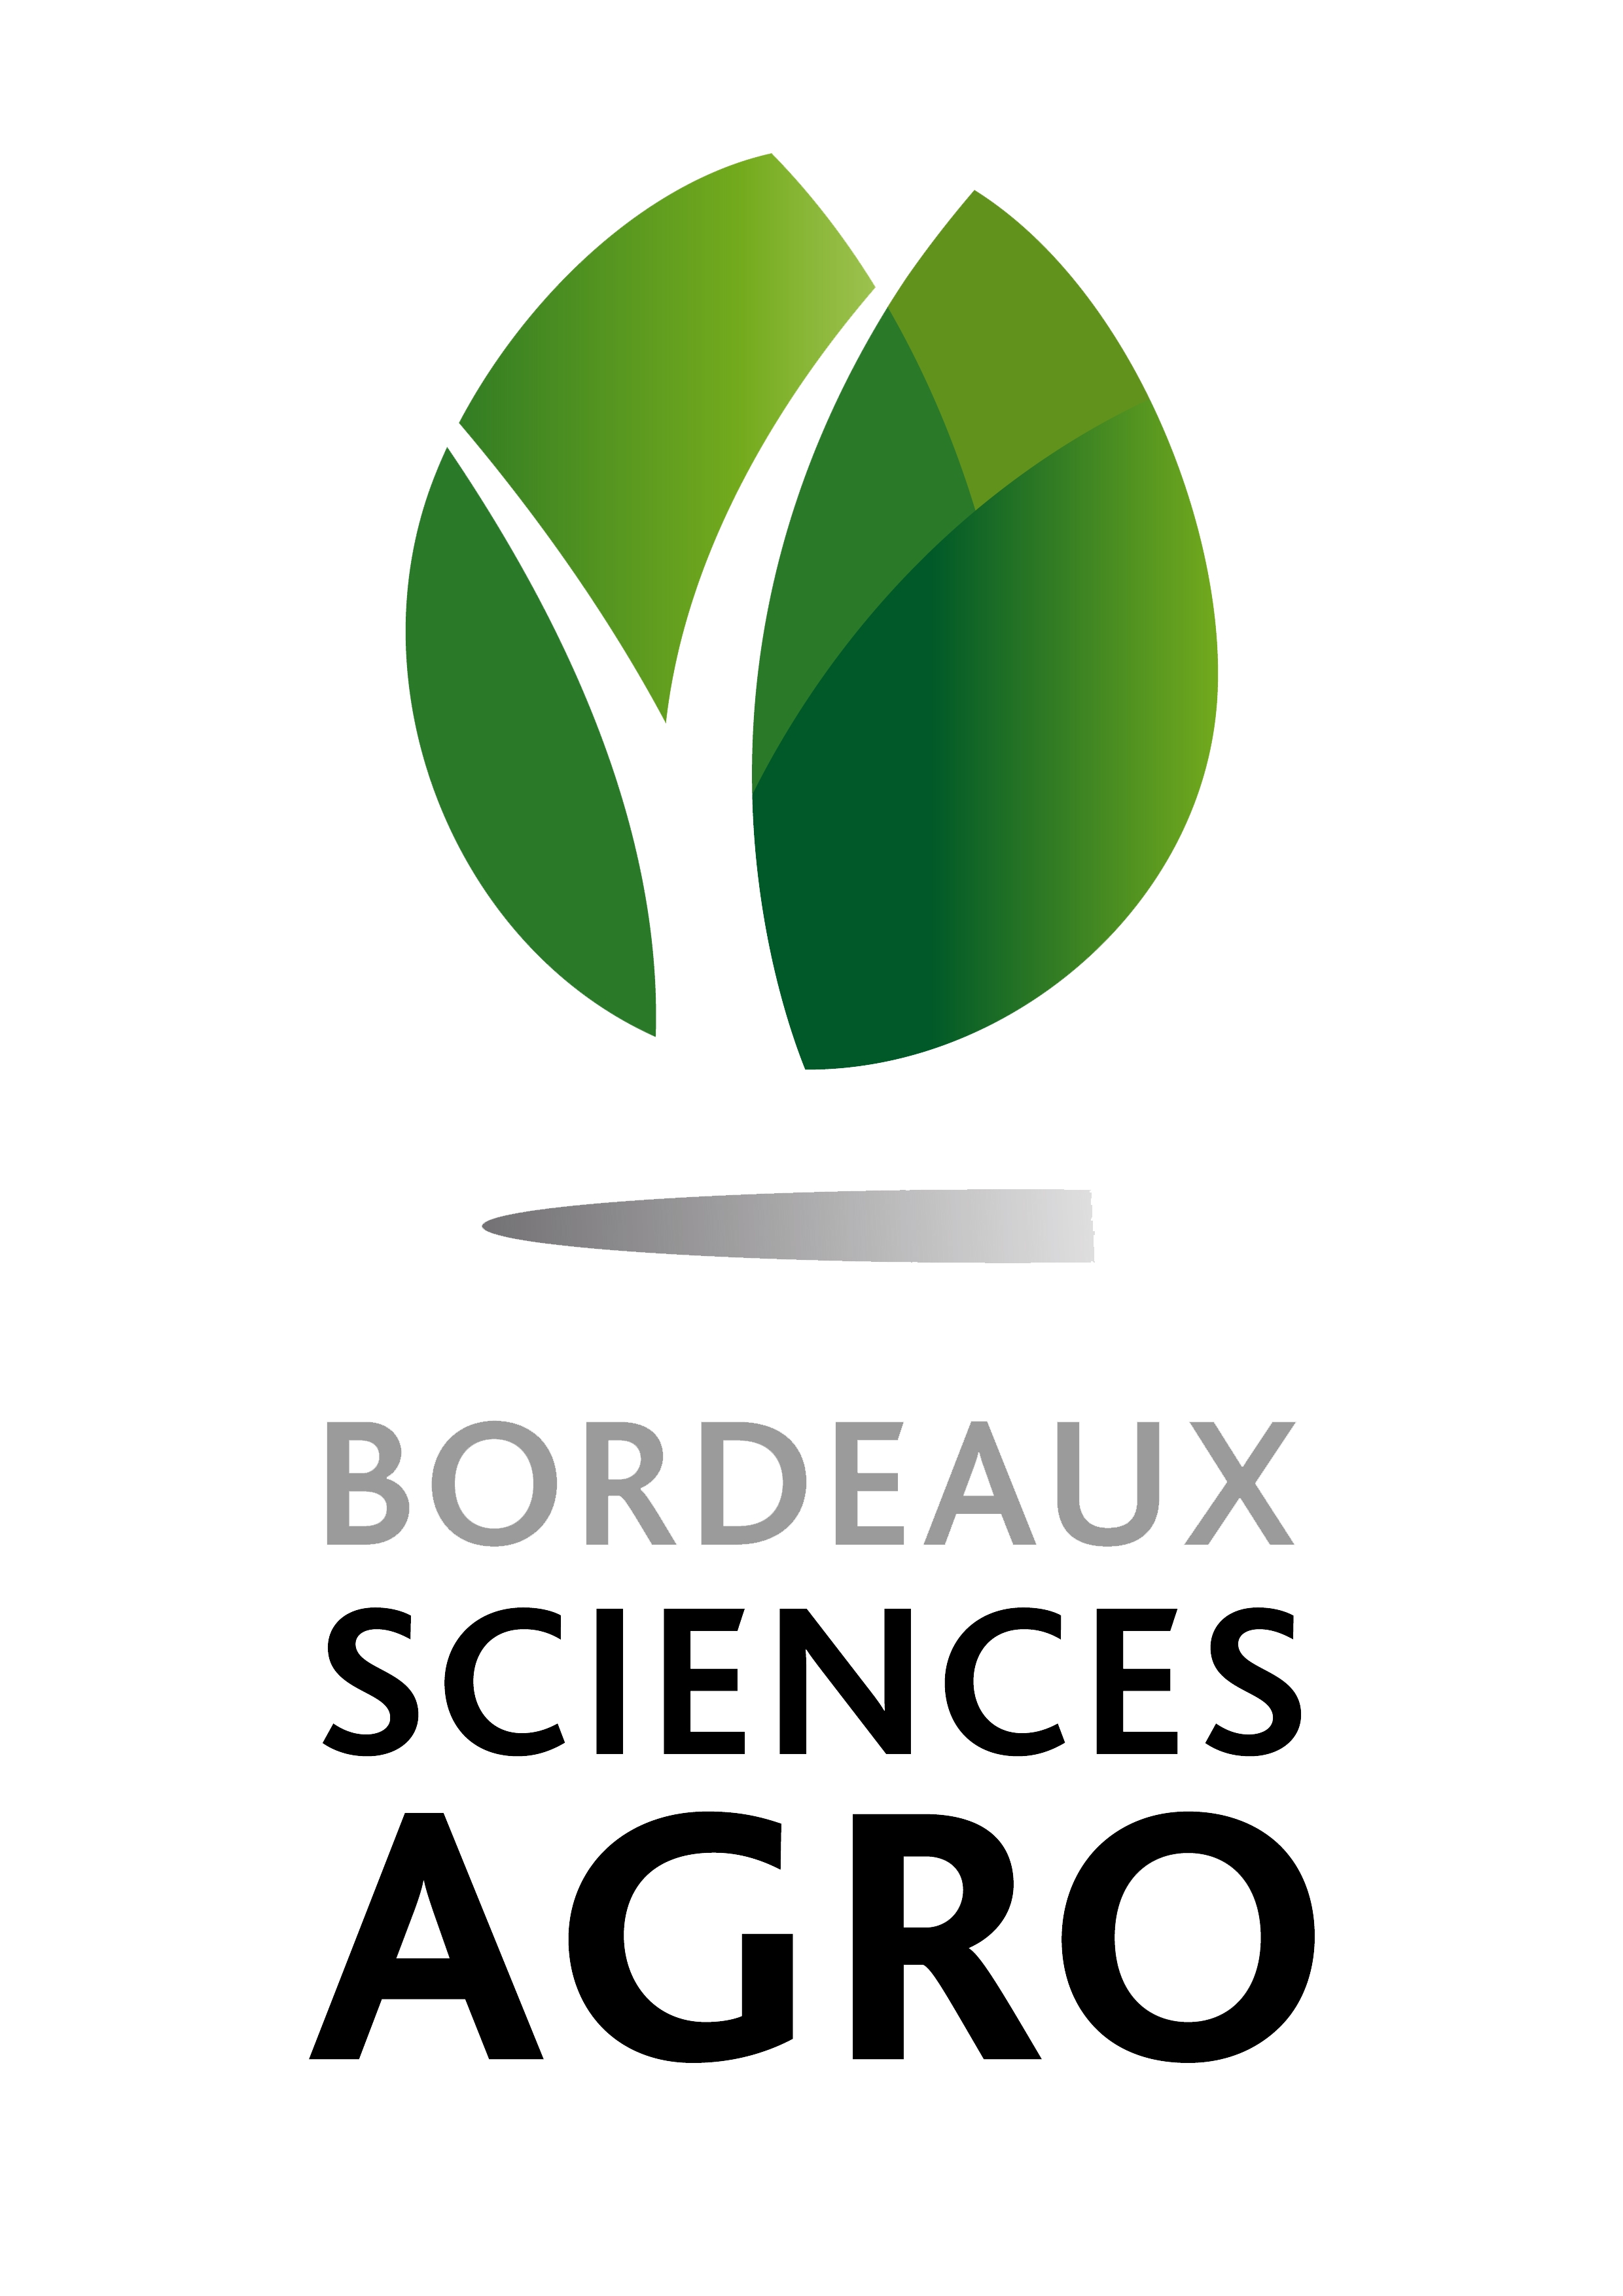 Bordeaux Sciences Agros